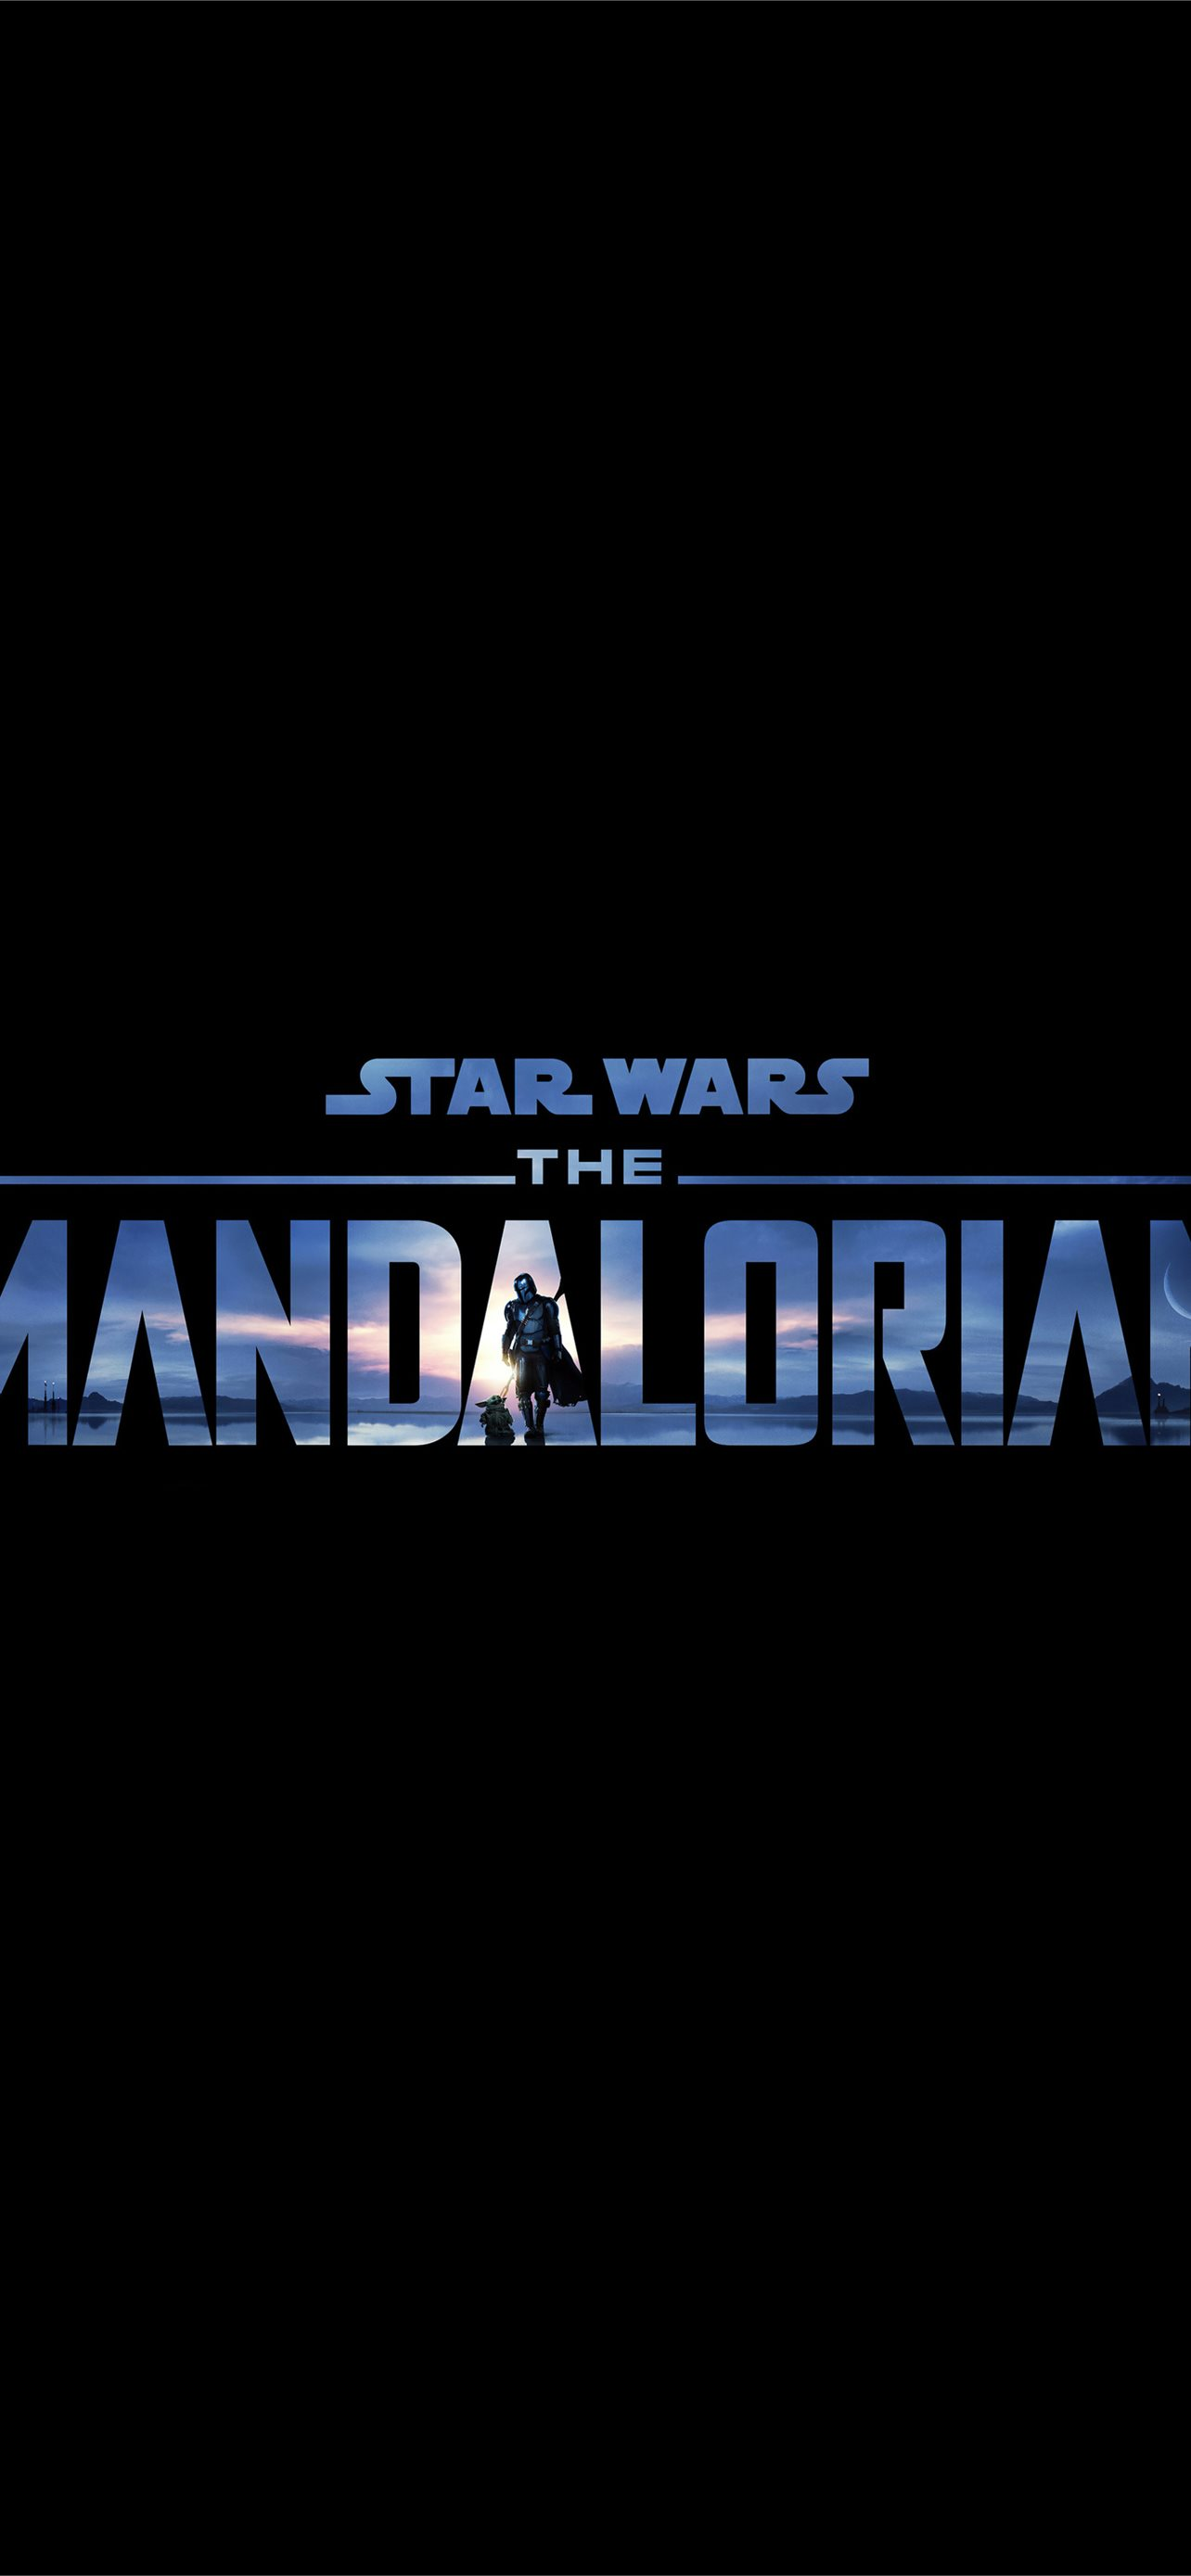 Star Wars The Mandalorian Official Iphone 12 Wallpapers Free Download